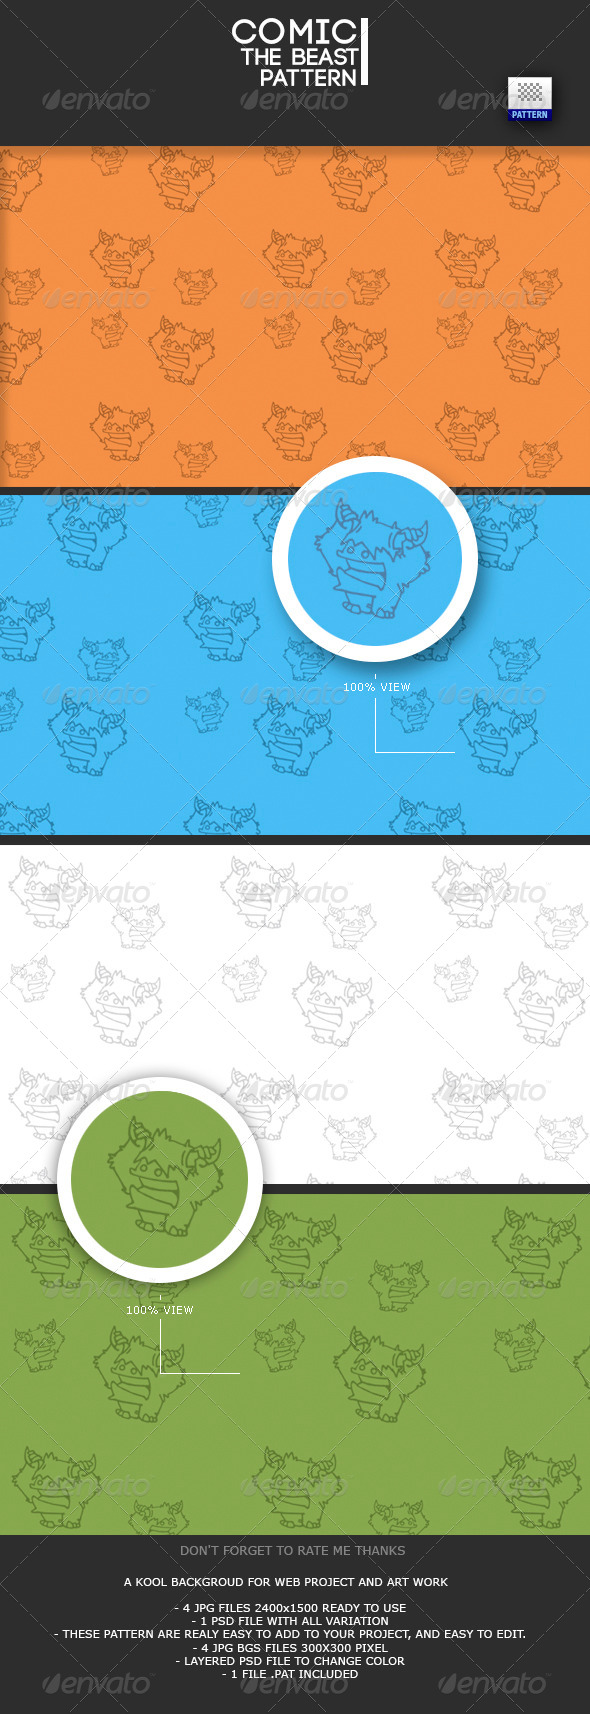 GraphicRiver Comic the Beast Pattern 7901999